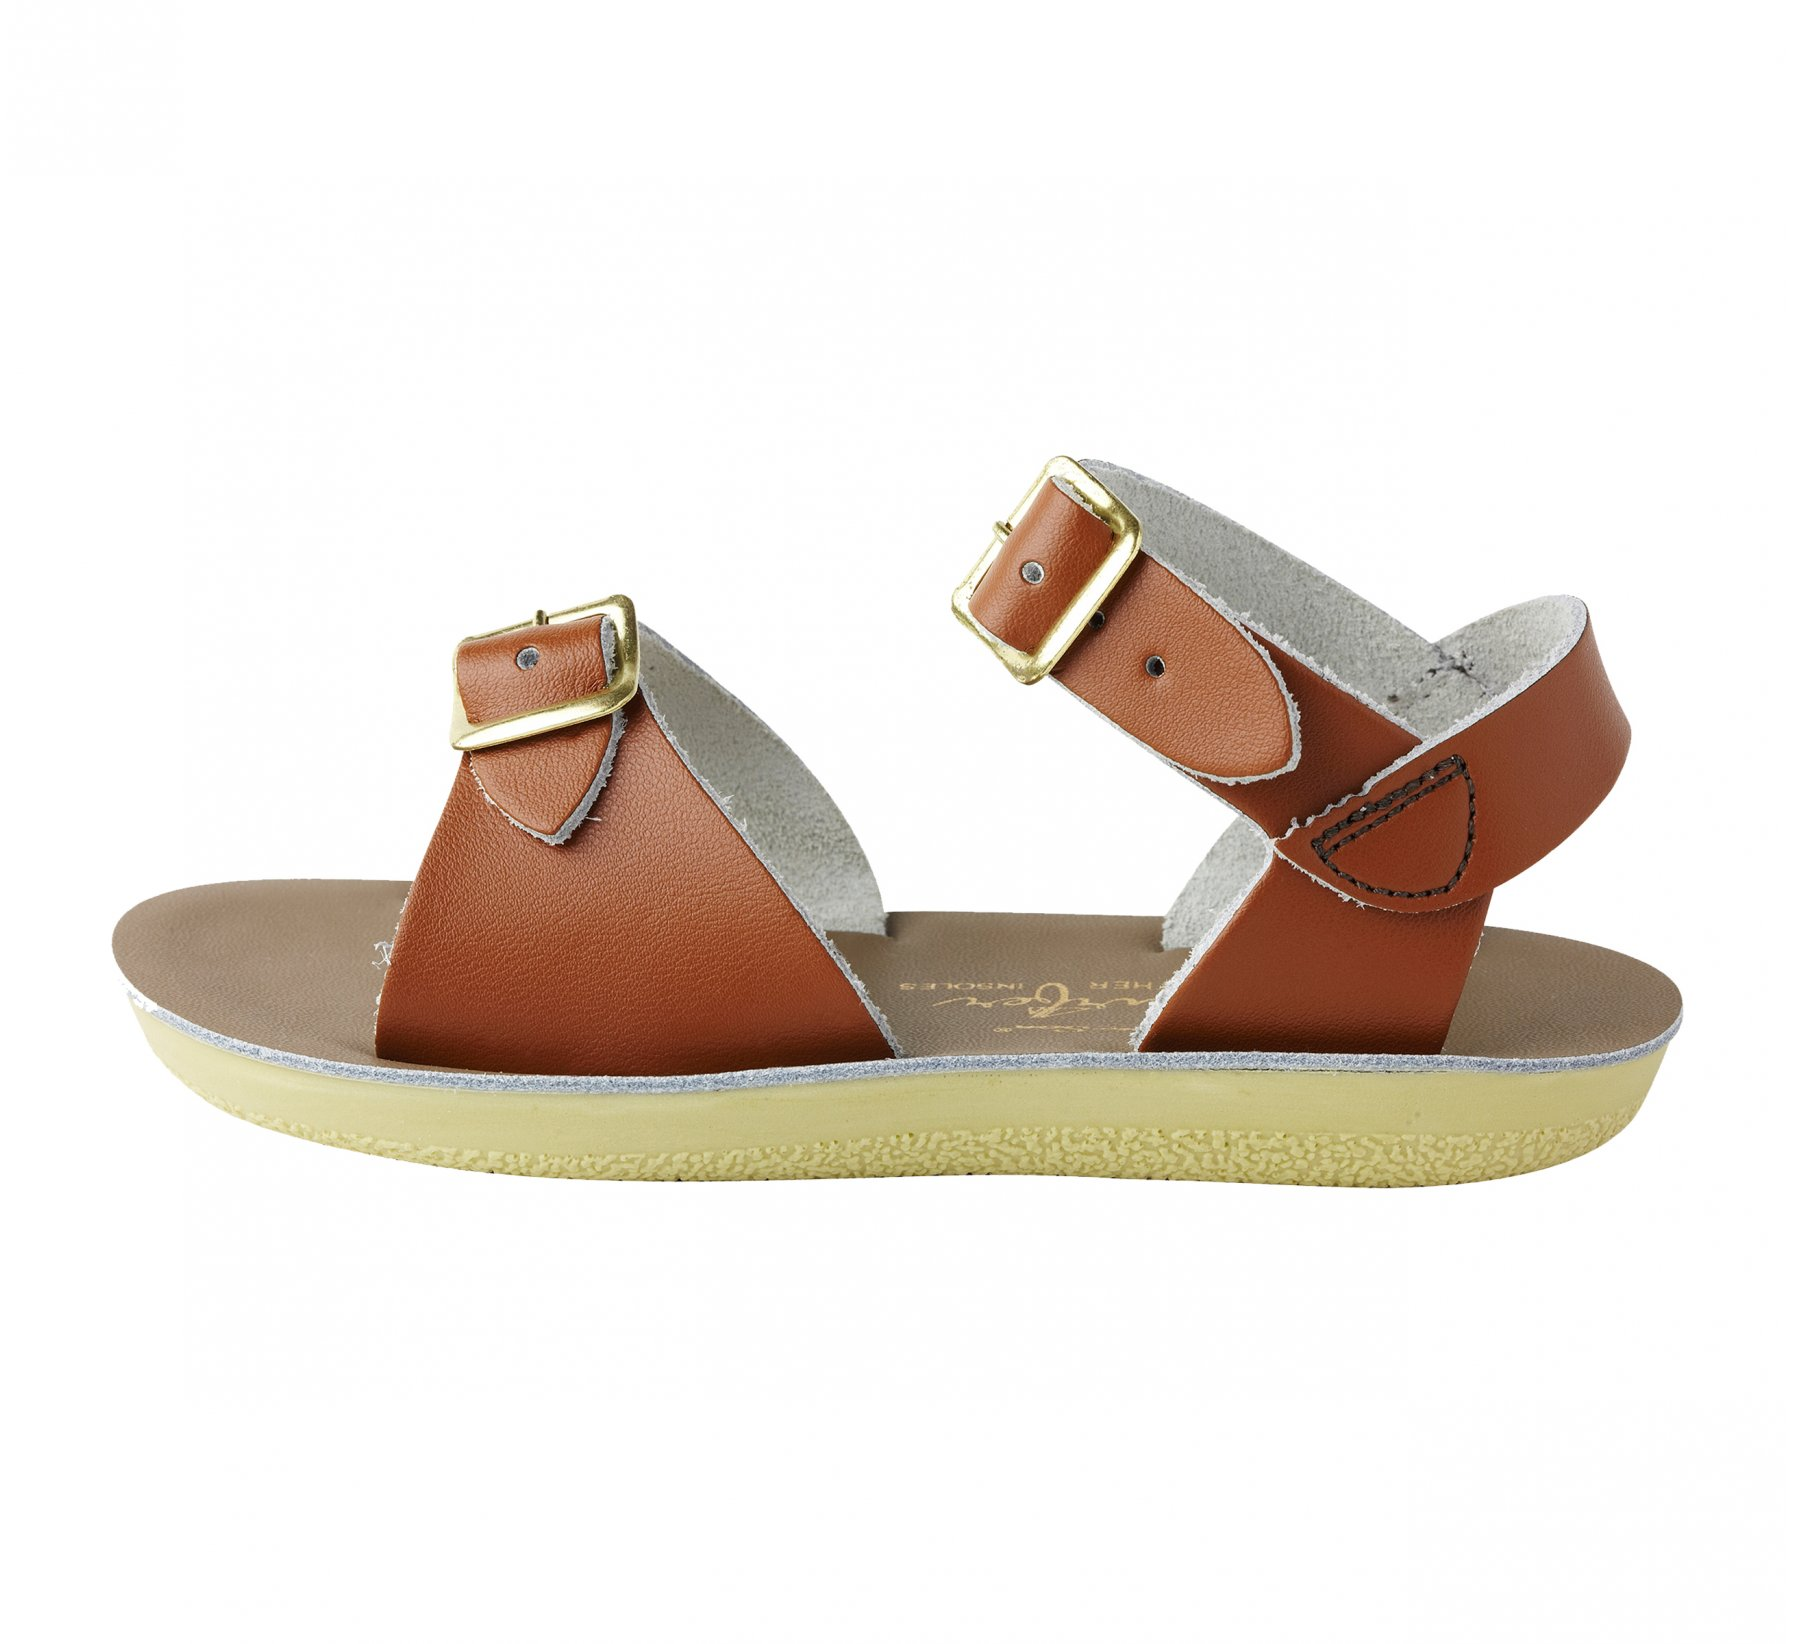 Surfer Tan - Salt Water Sandals